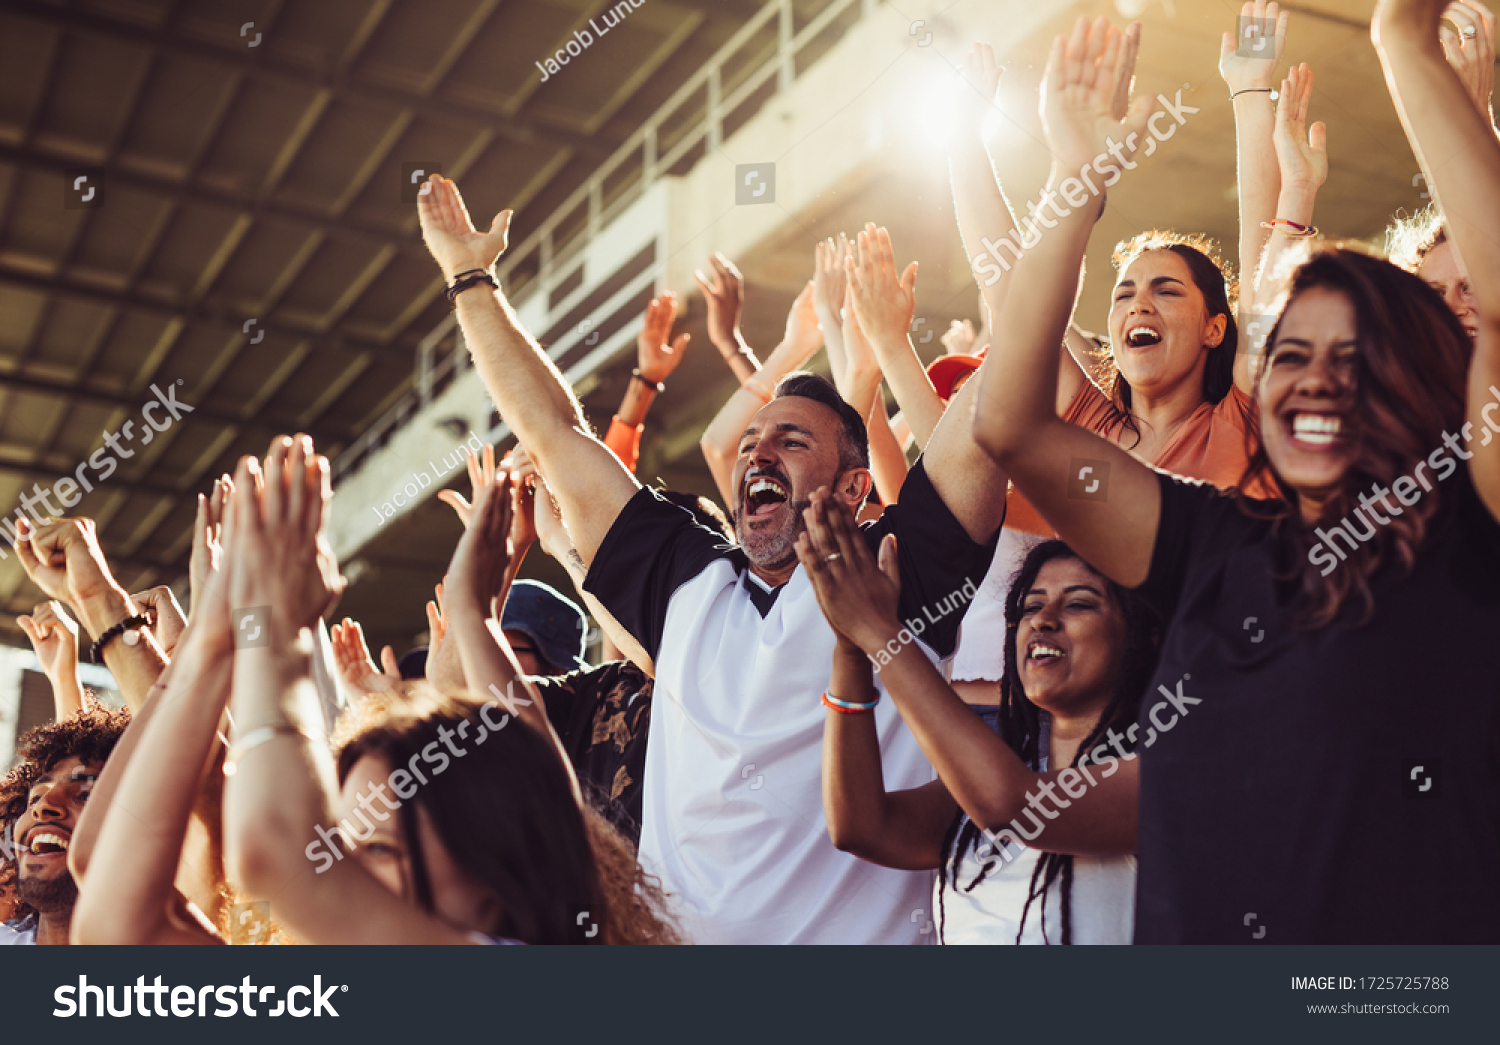 Crowd of sports fans cheering during a match in stadium. Excited people standing with their arms raised, clapping and yelling to encourage their team. #1725725788